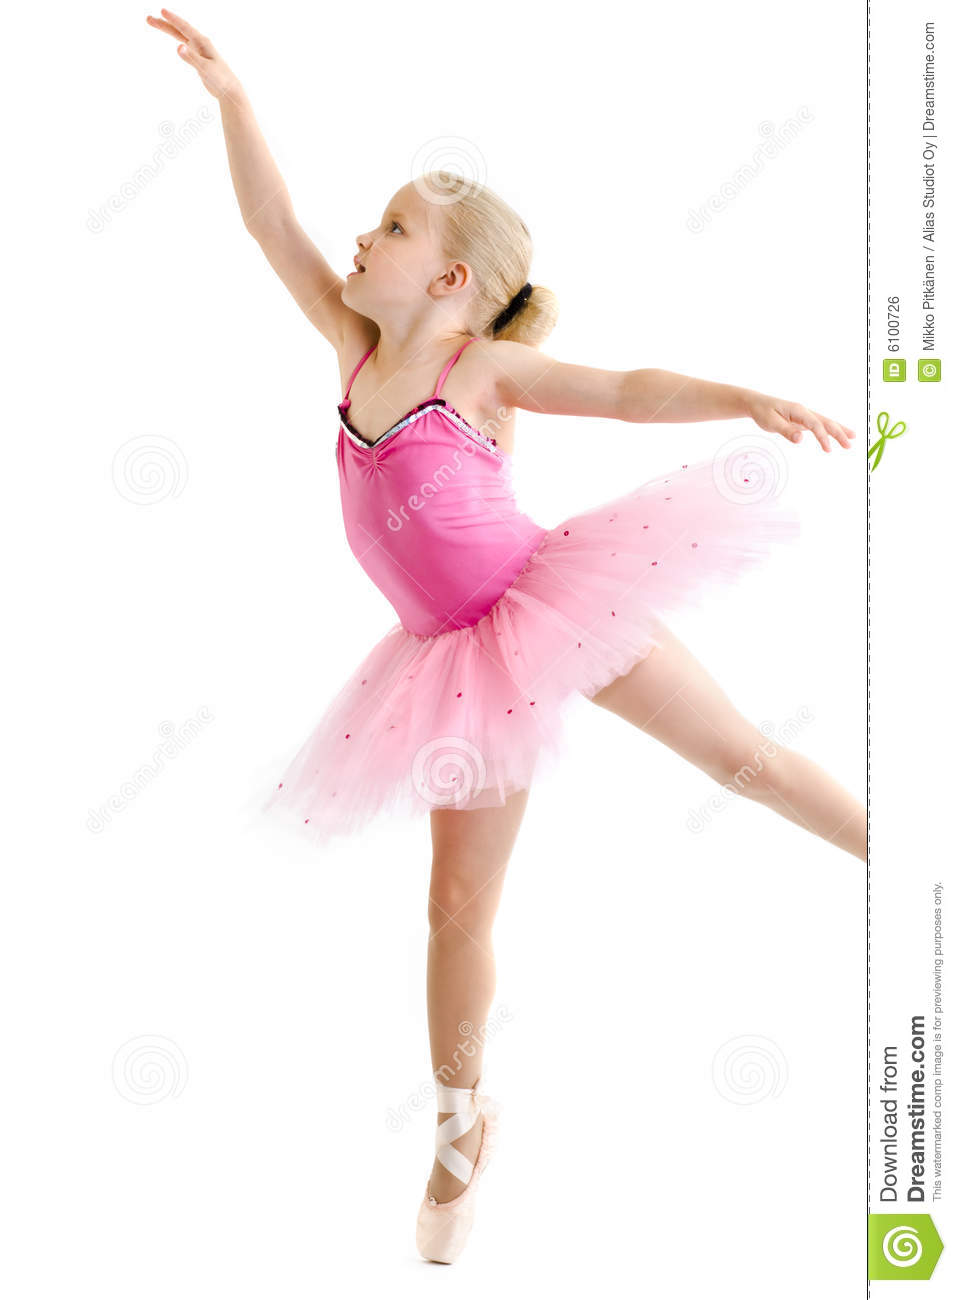 Young Ballerina Royalty Free Stock Image - Image: 6100726